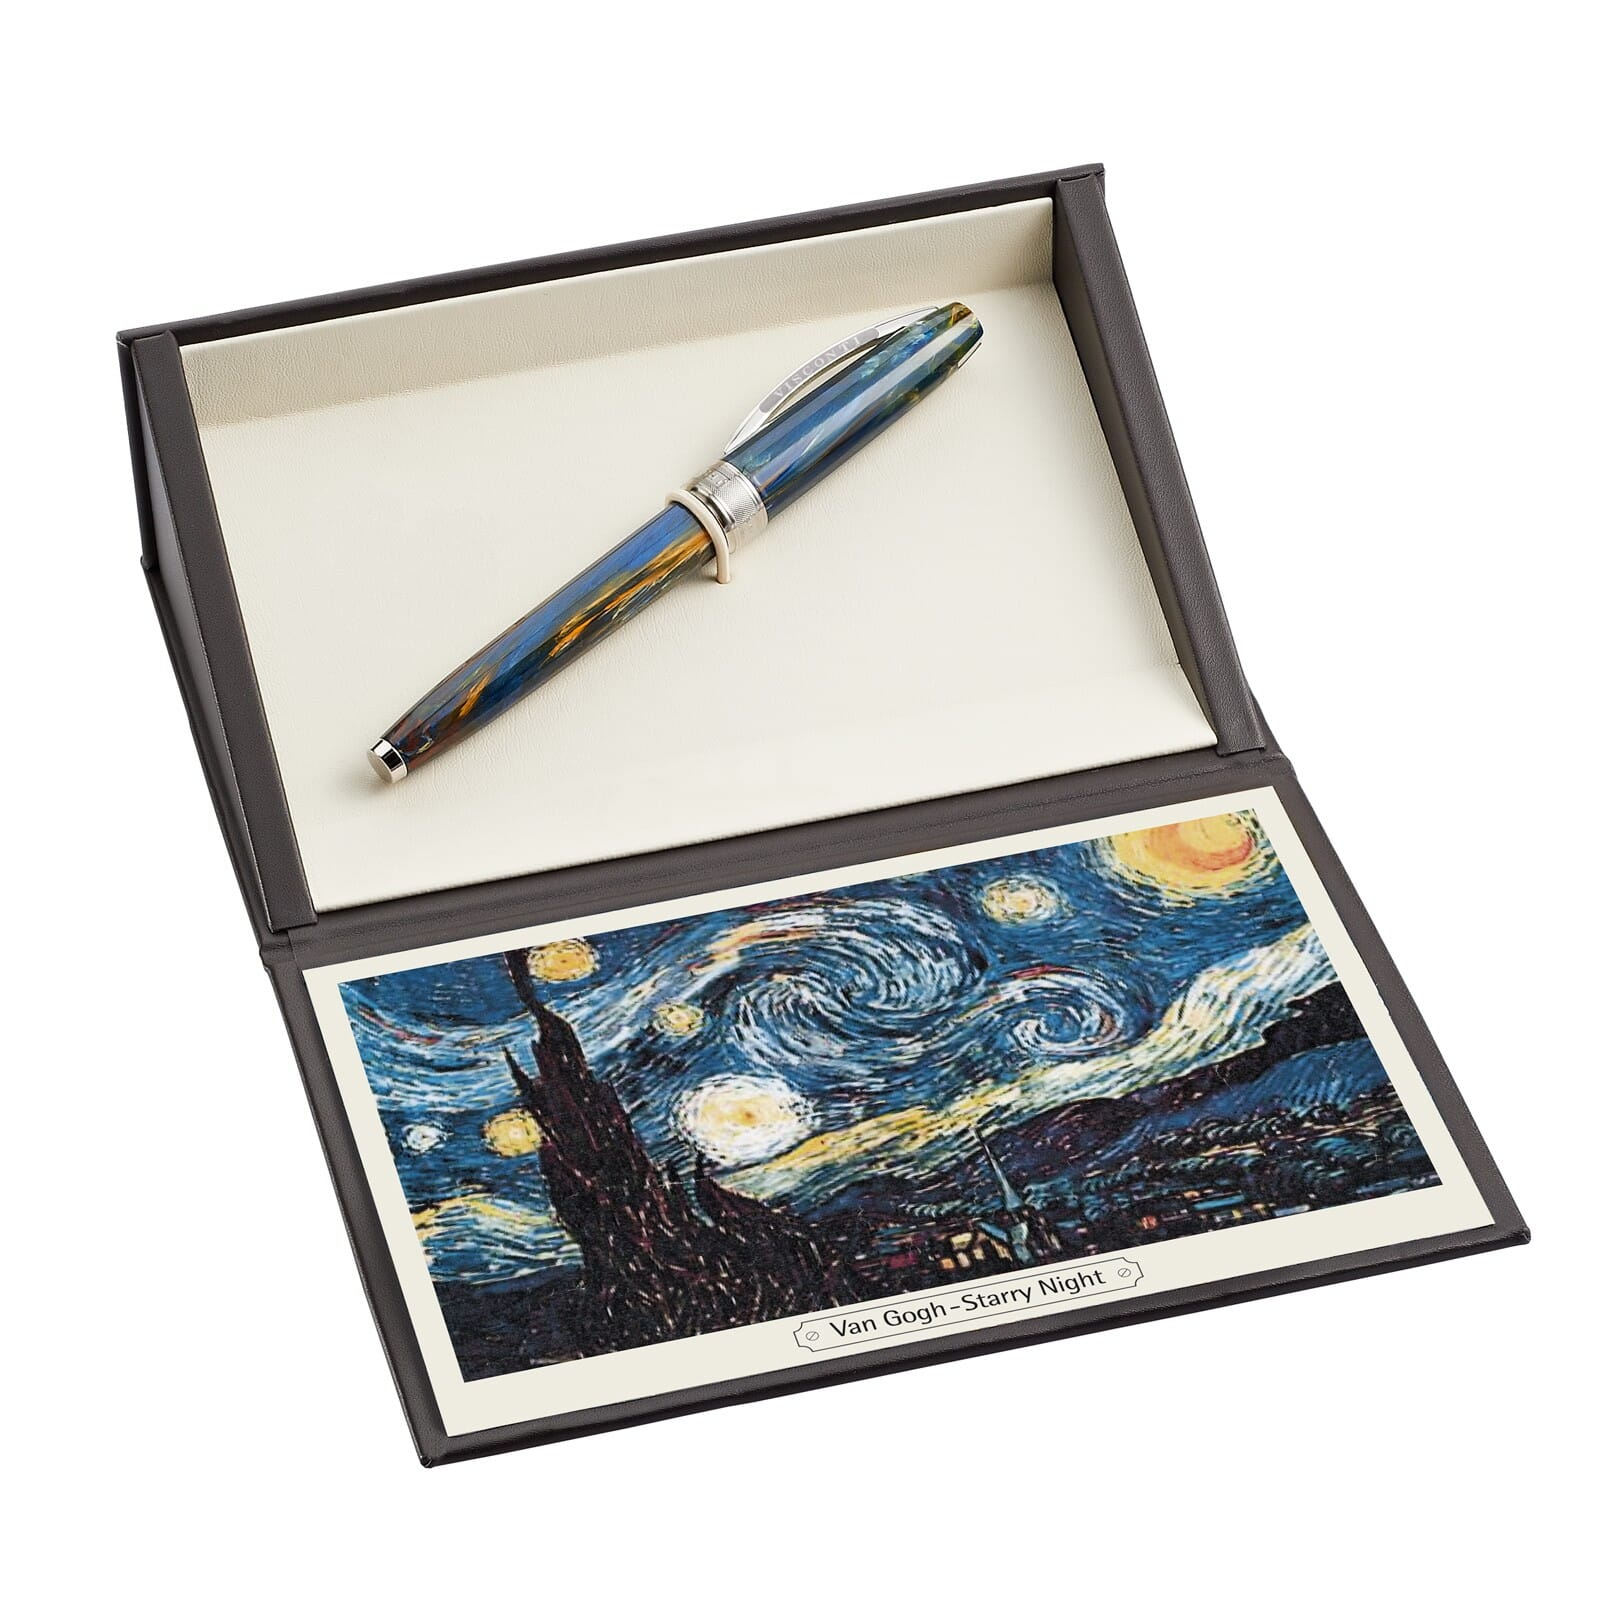 Van Gogh The Starry Night Chrome Money Clip